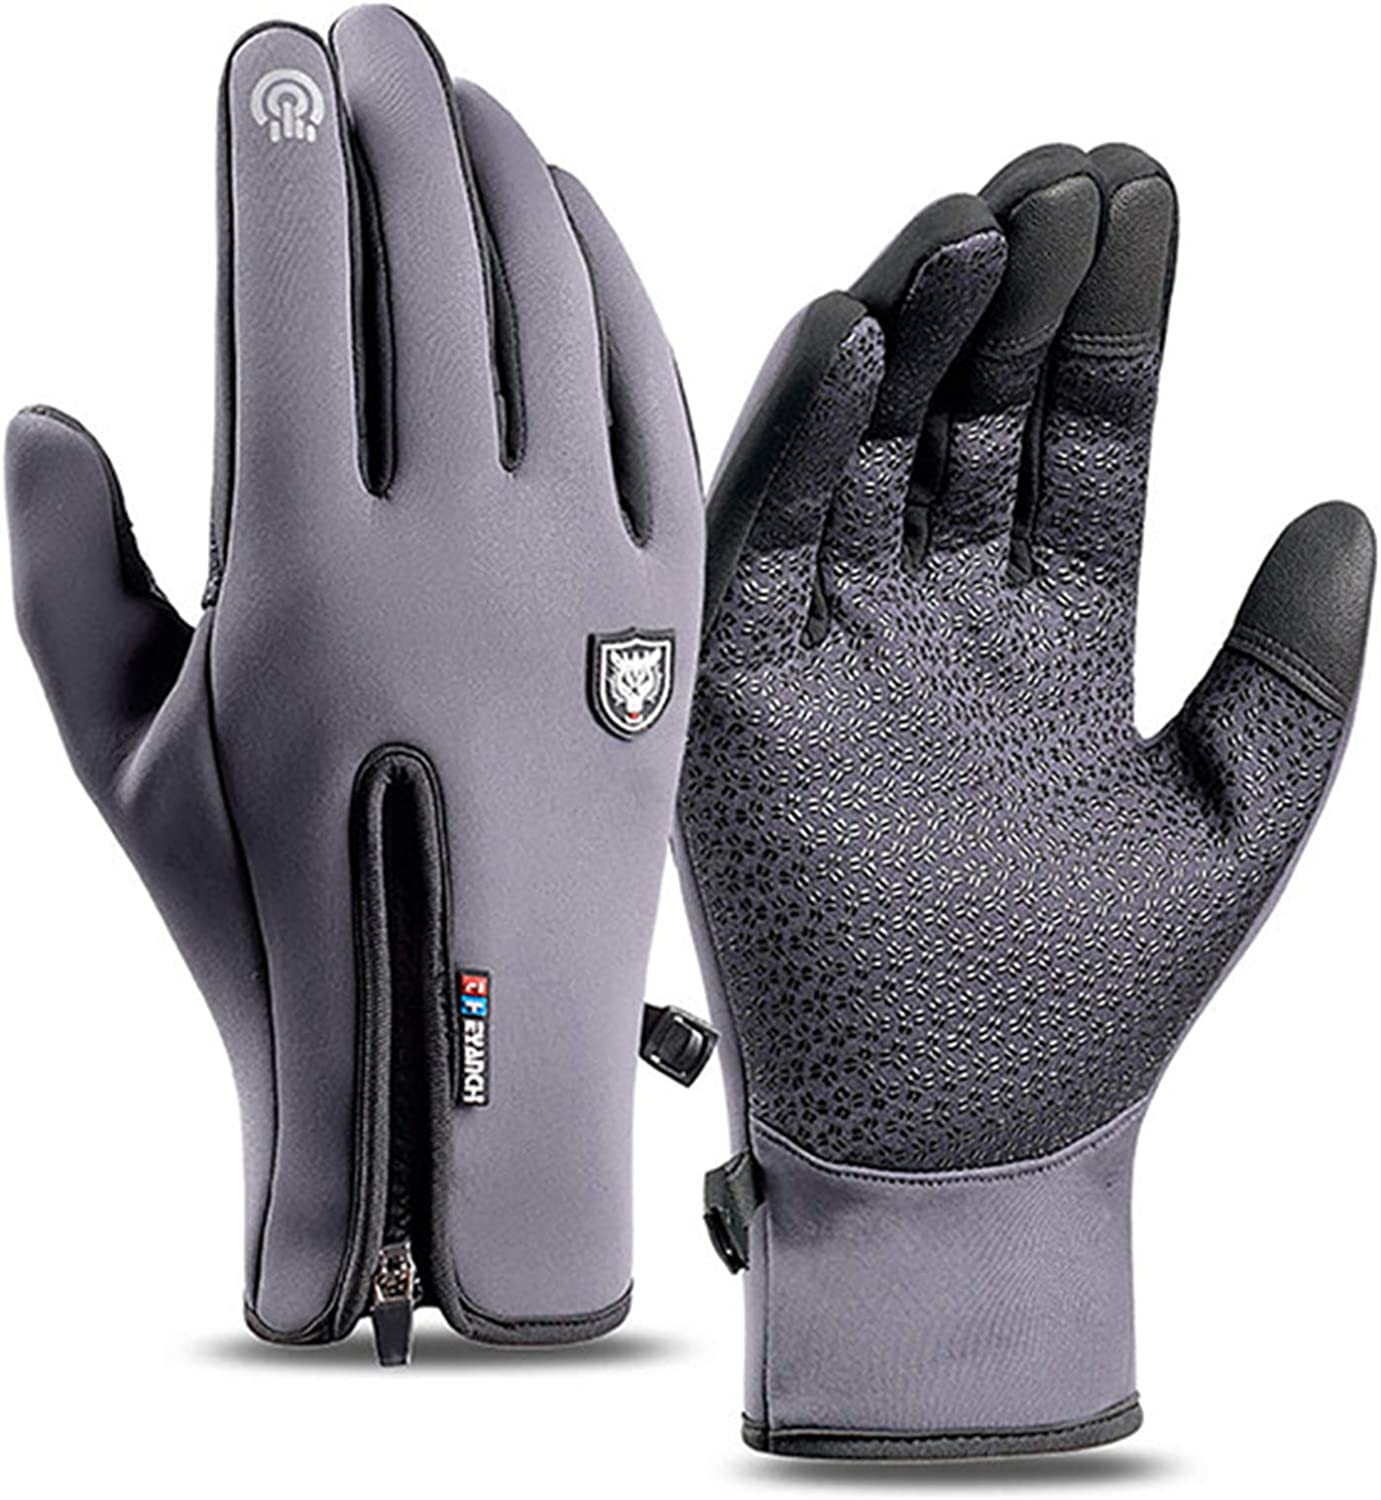 Winter Gloves for Men Women Touch Screen Cold Weather Thermal Warm Gloves